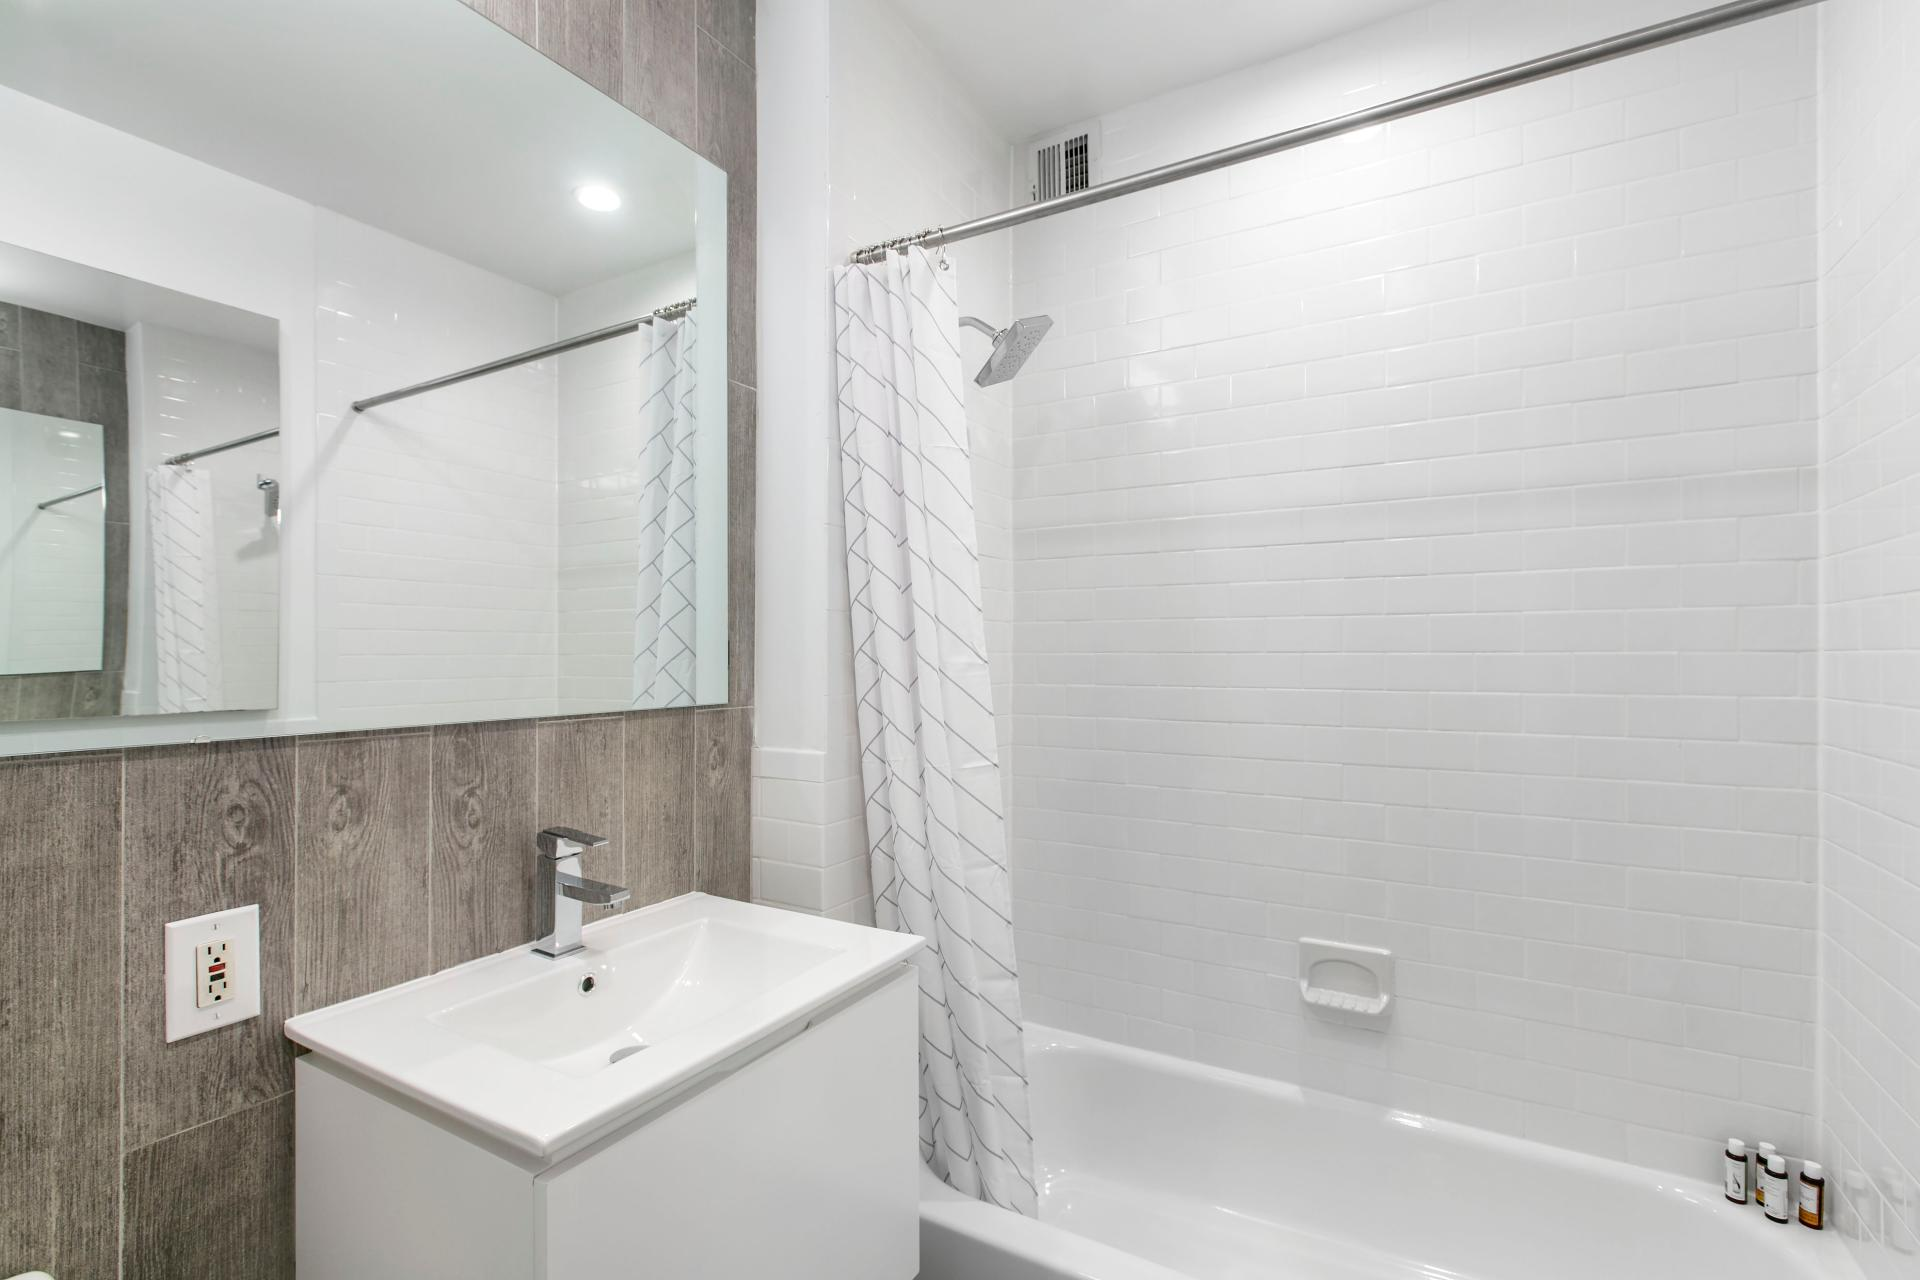 Bathroom at West Broadway Apartment